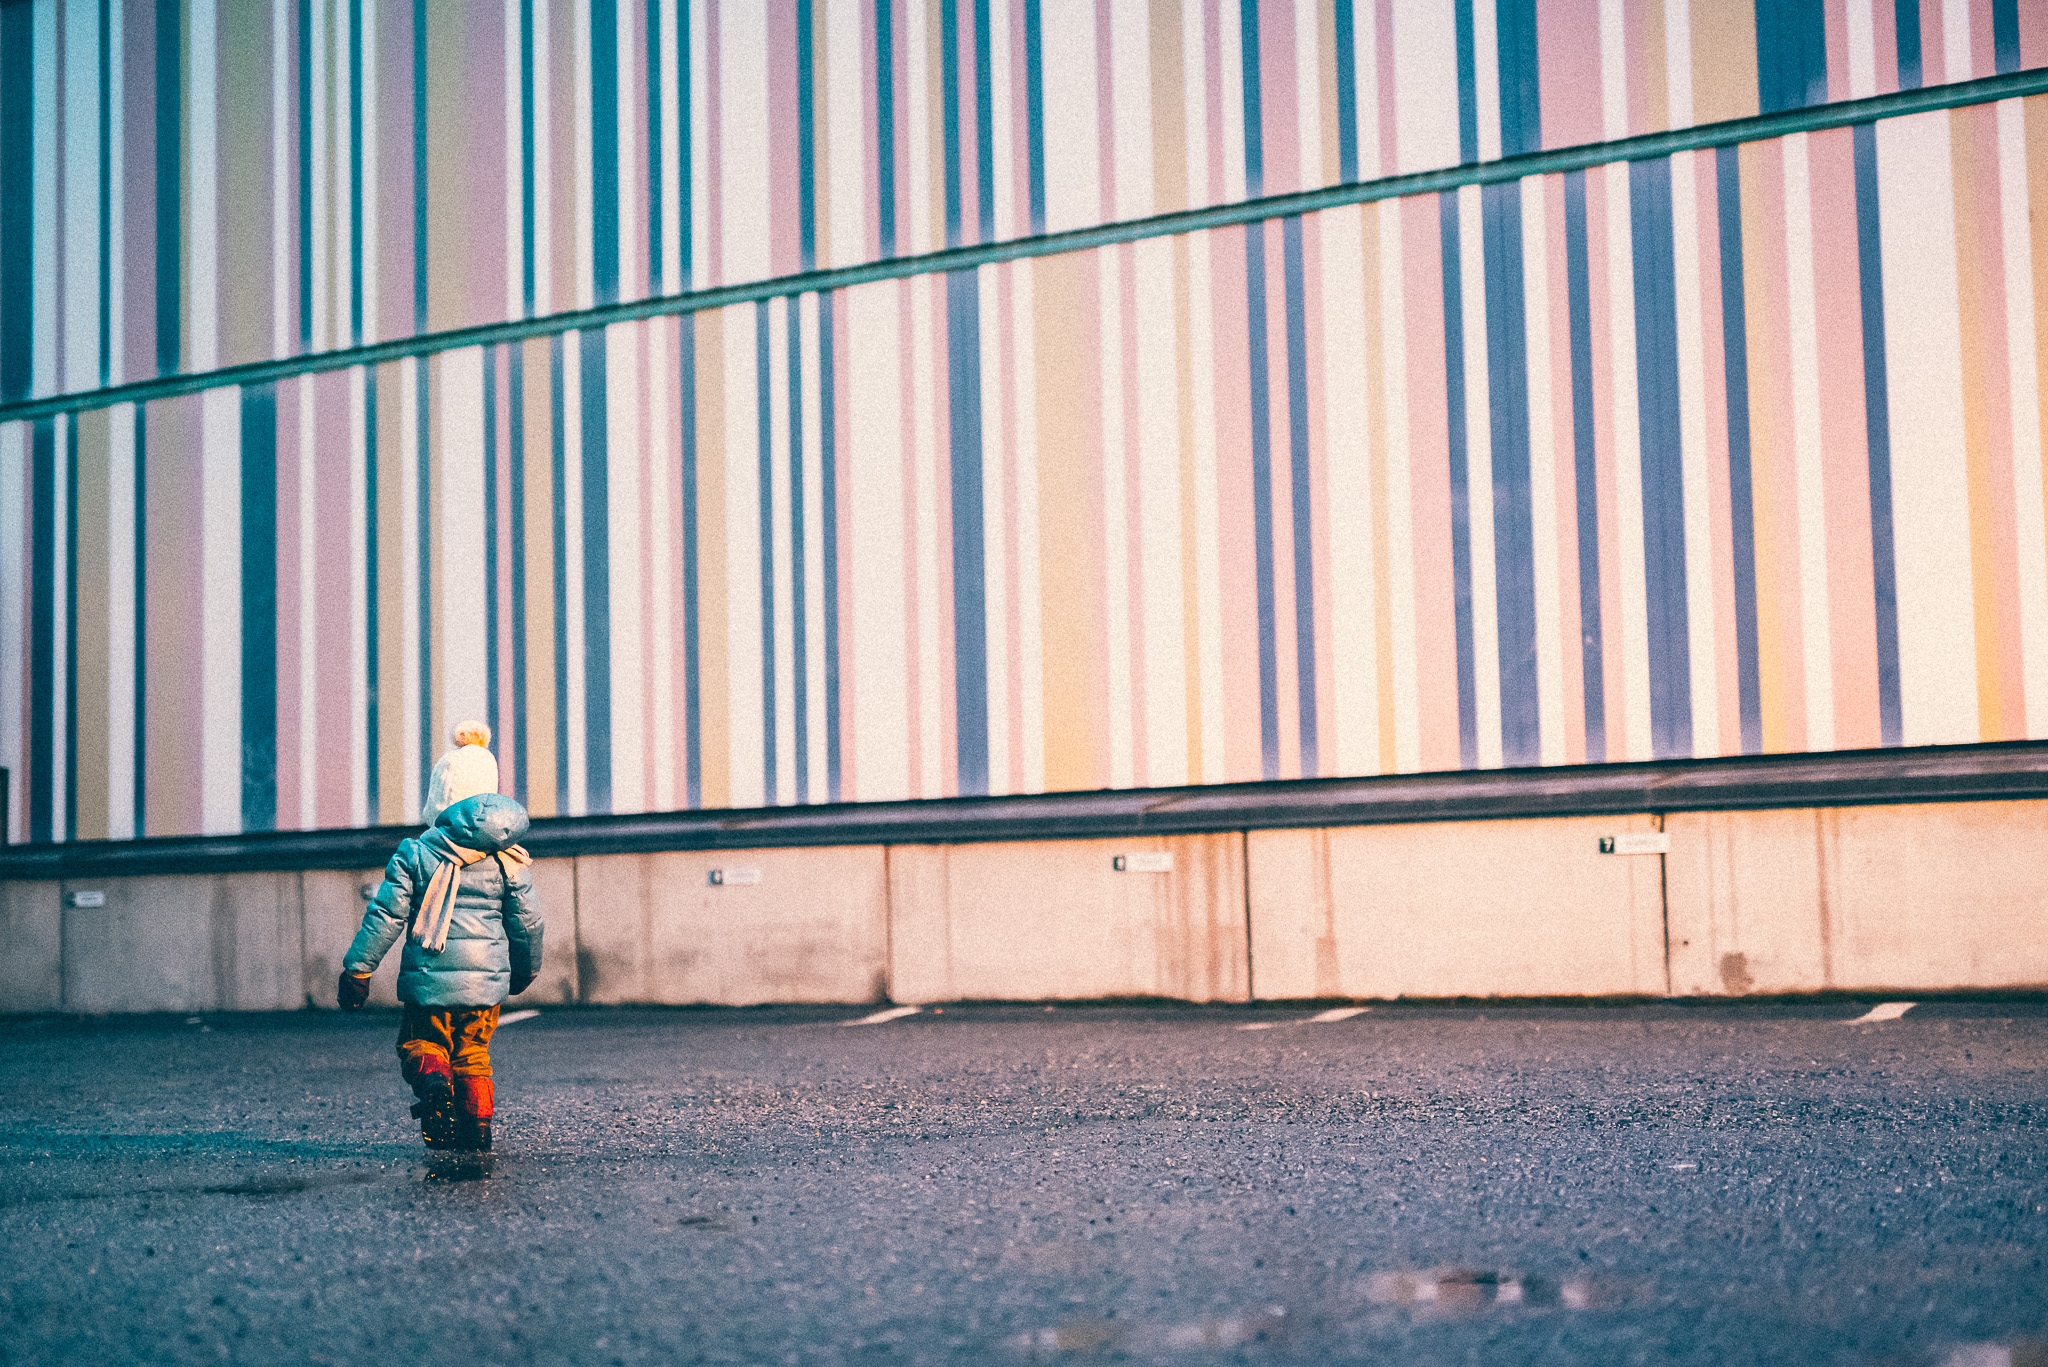 Child running in front of striped wall